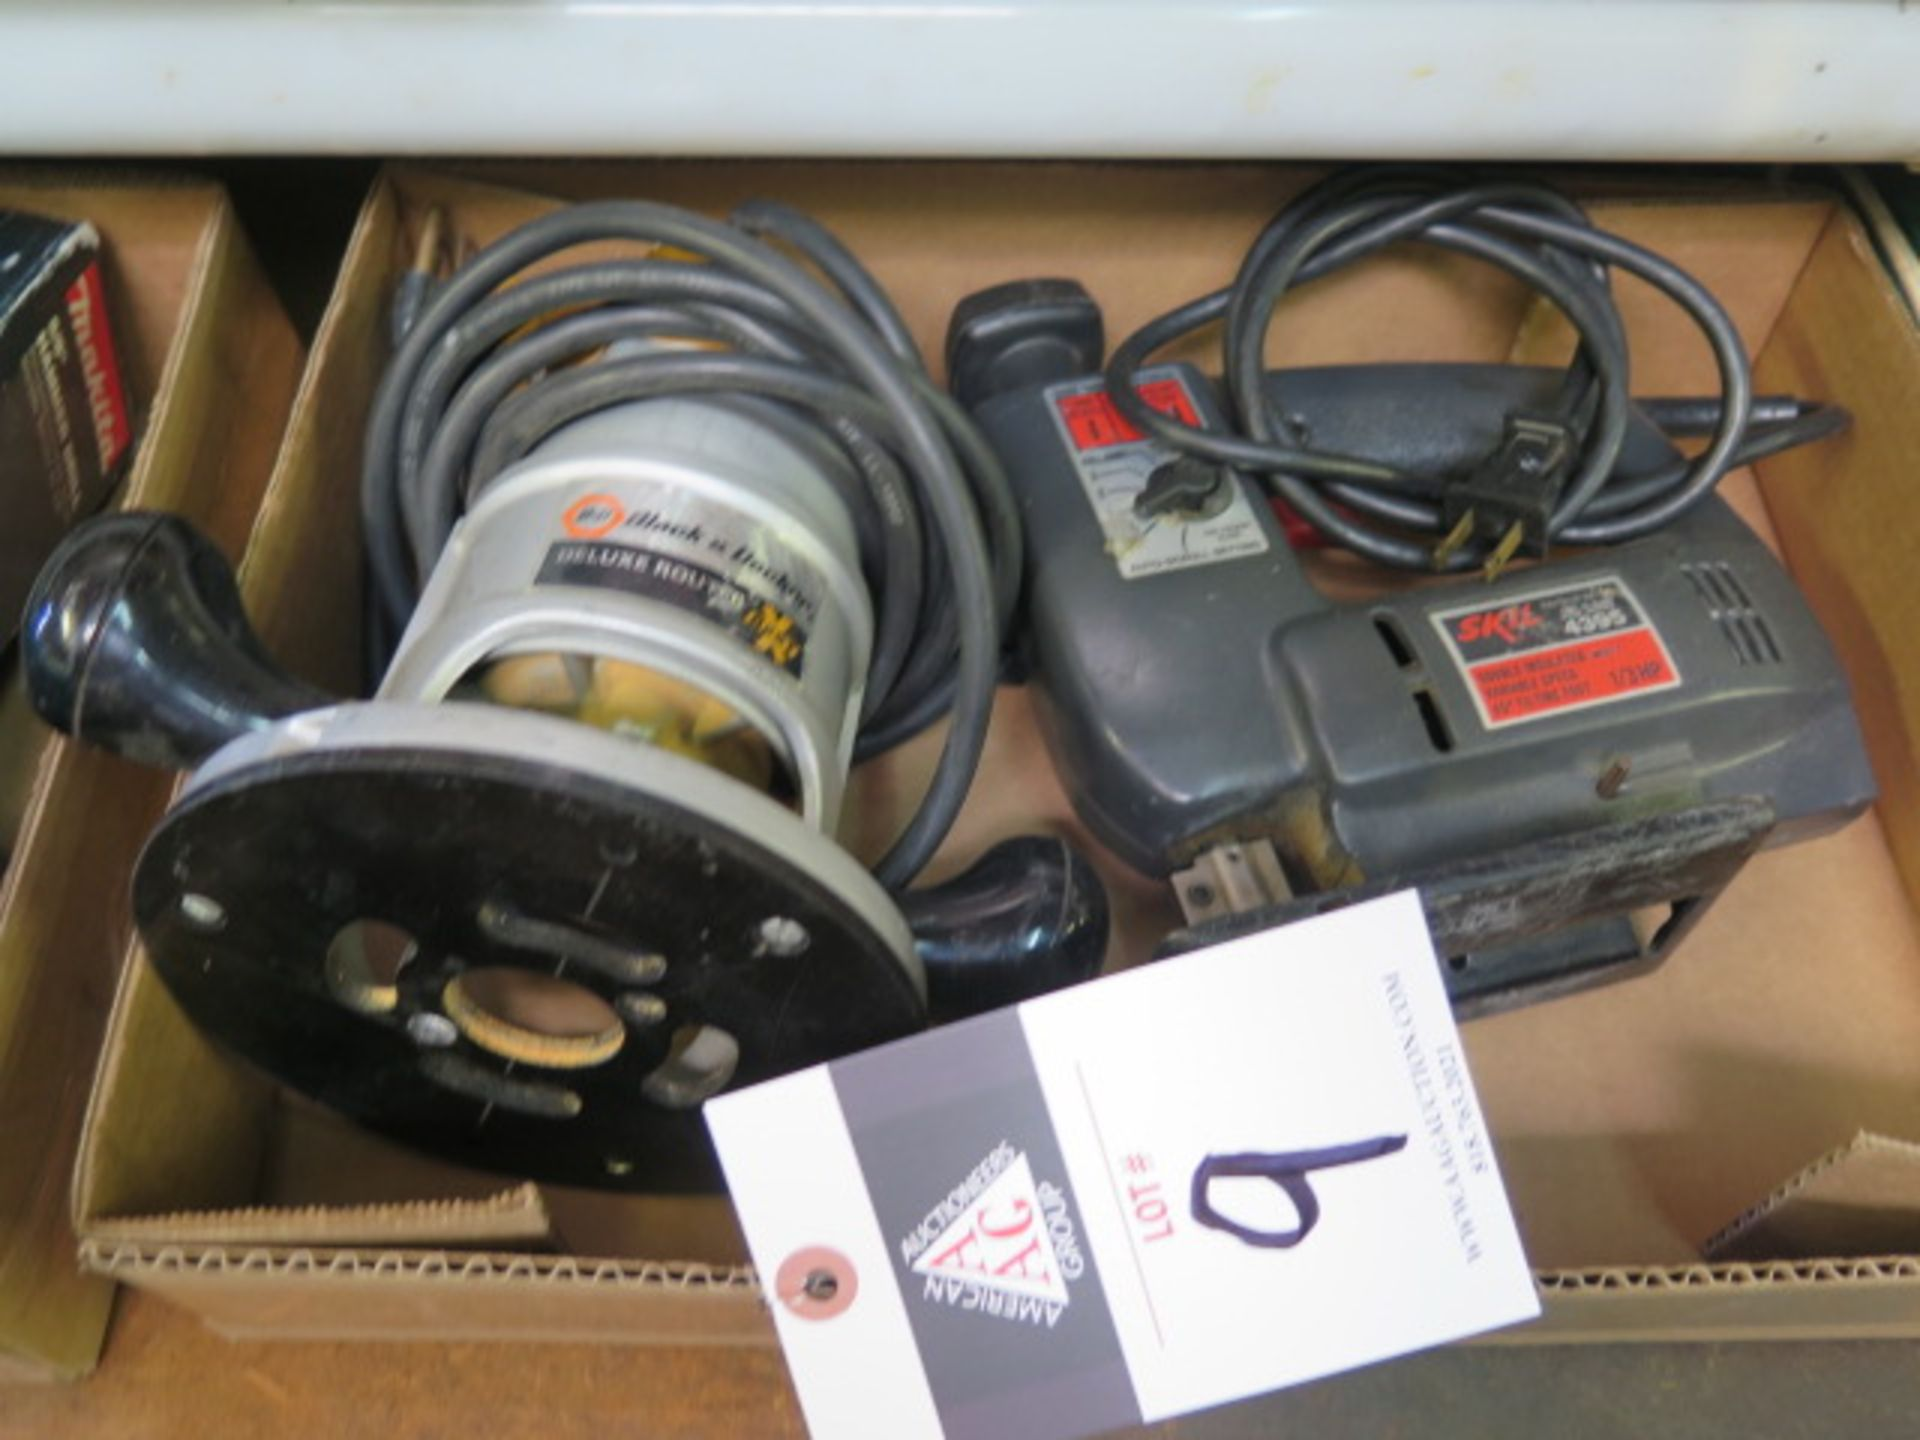 Lot 9 - Skil Jig Saw and Black & Decker Router (SOLD AS-IS - NO WARRANTY)